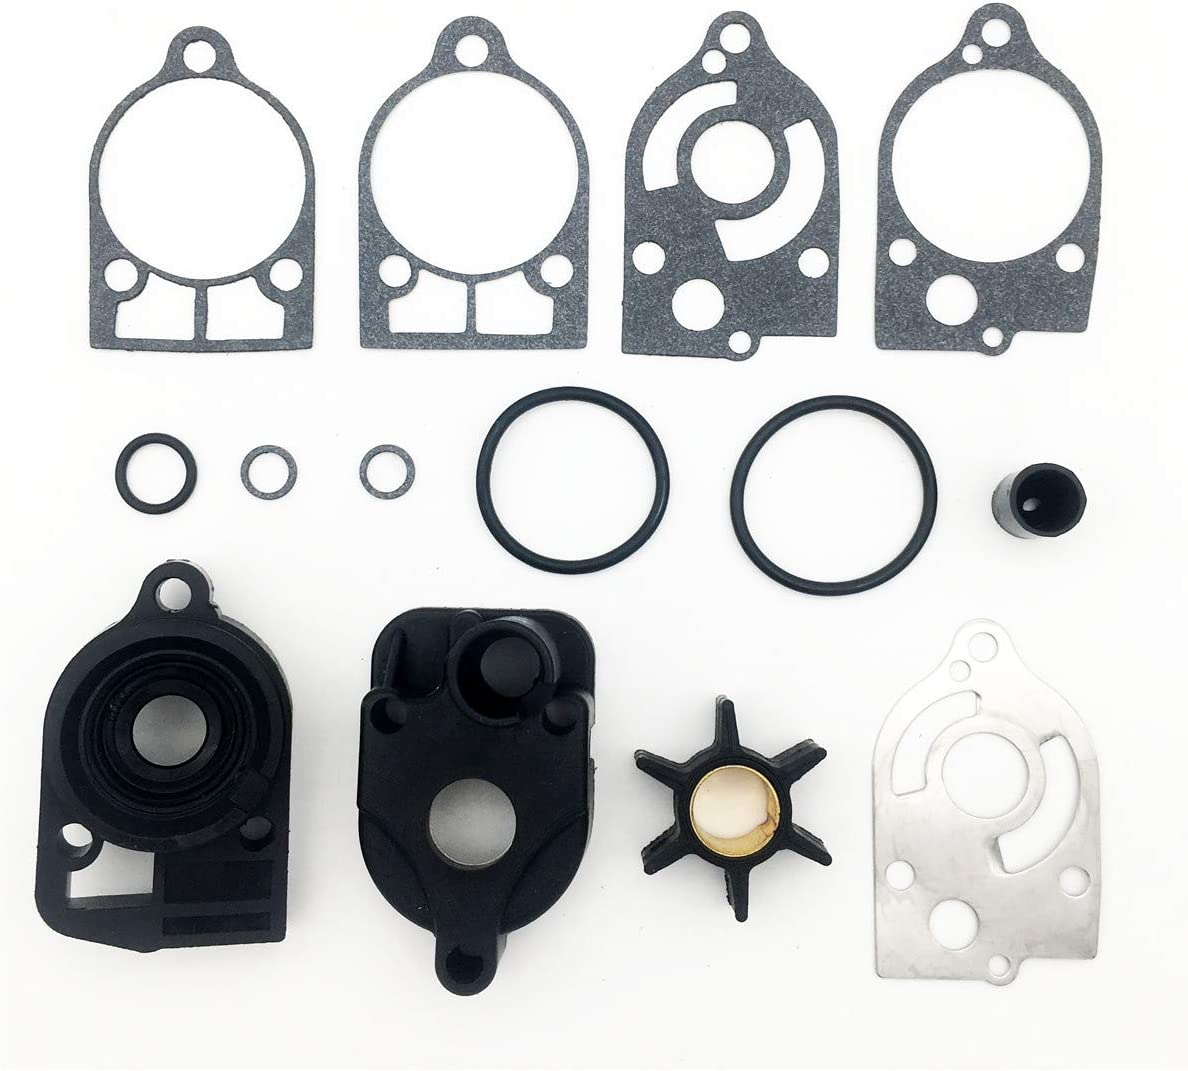 Water Pump Repair Kit Replacement For Mercury and Mariner Outboards 30 HP - 70 HP 46-77177A3 18-3324